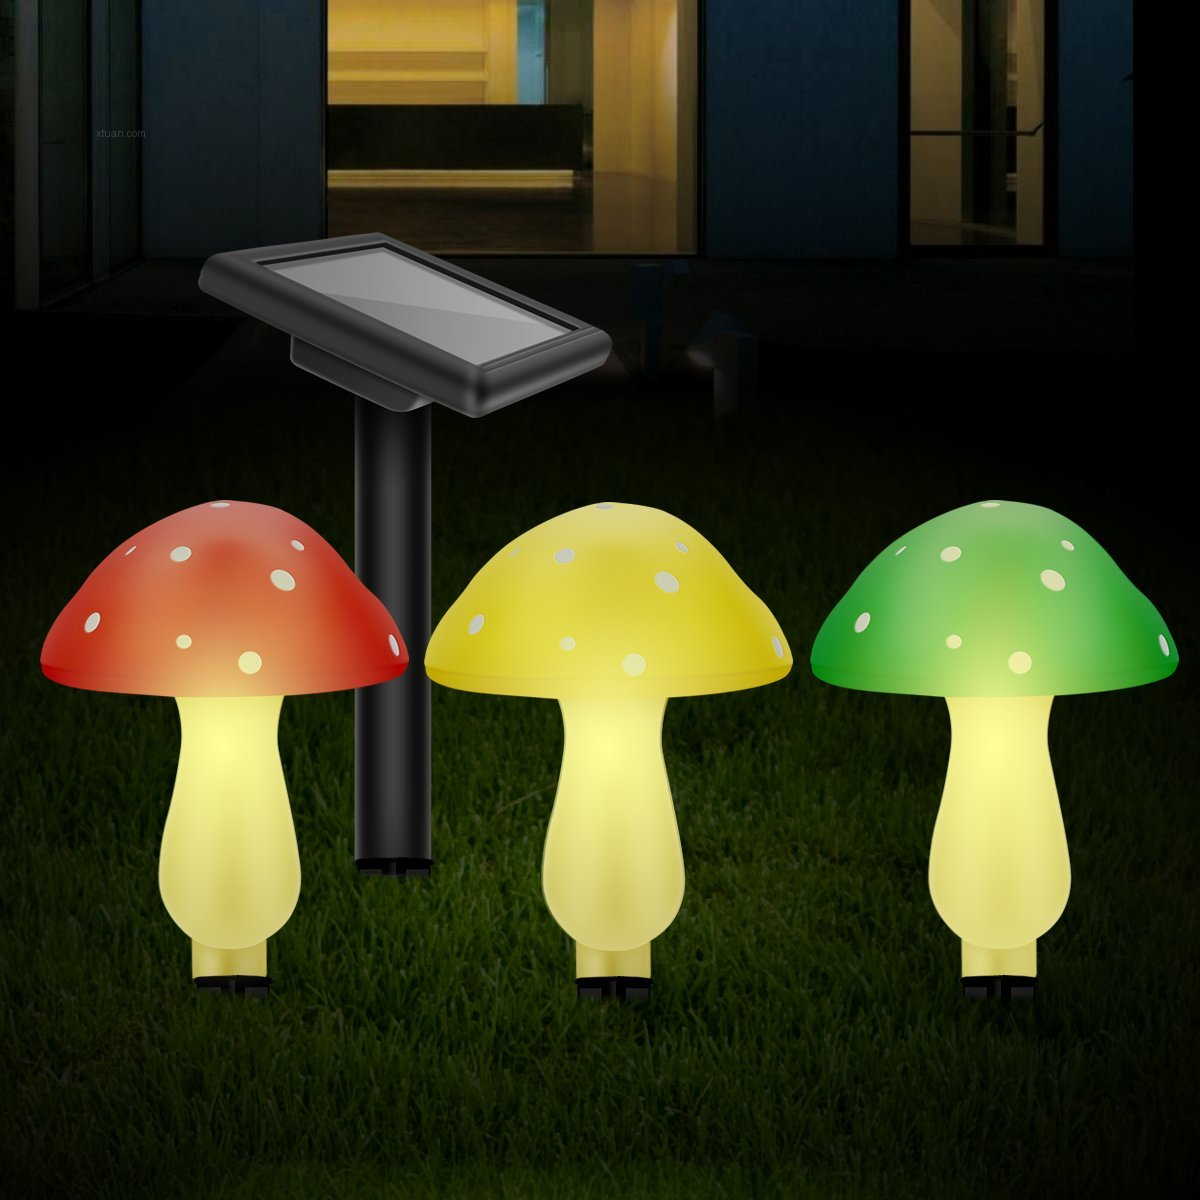 Outdoor Solar Garden Lights, Solar Powered Mushroom Lights, LED Solar Decor Lights for Garden, Patio, Backyard by Greluna